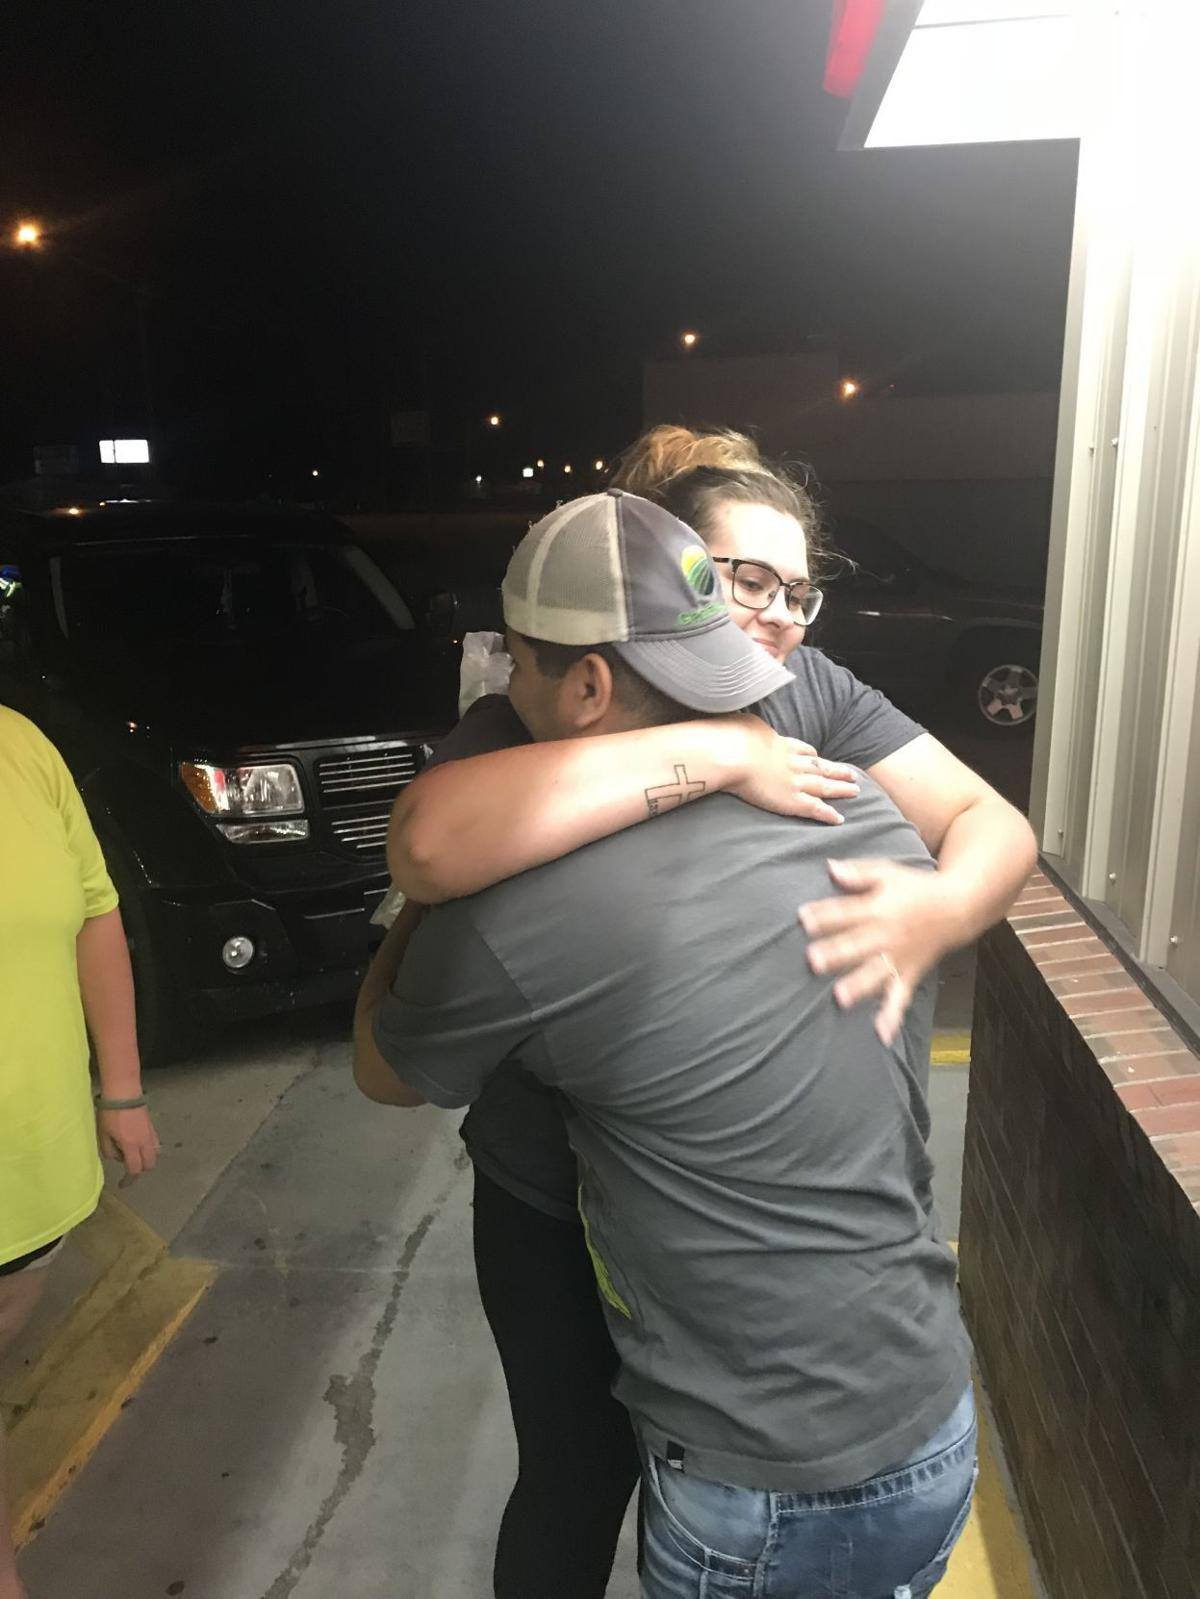 Family members reunited as some workers detained in federal immigration raid return to O'Neill